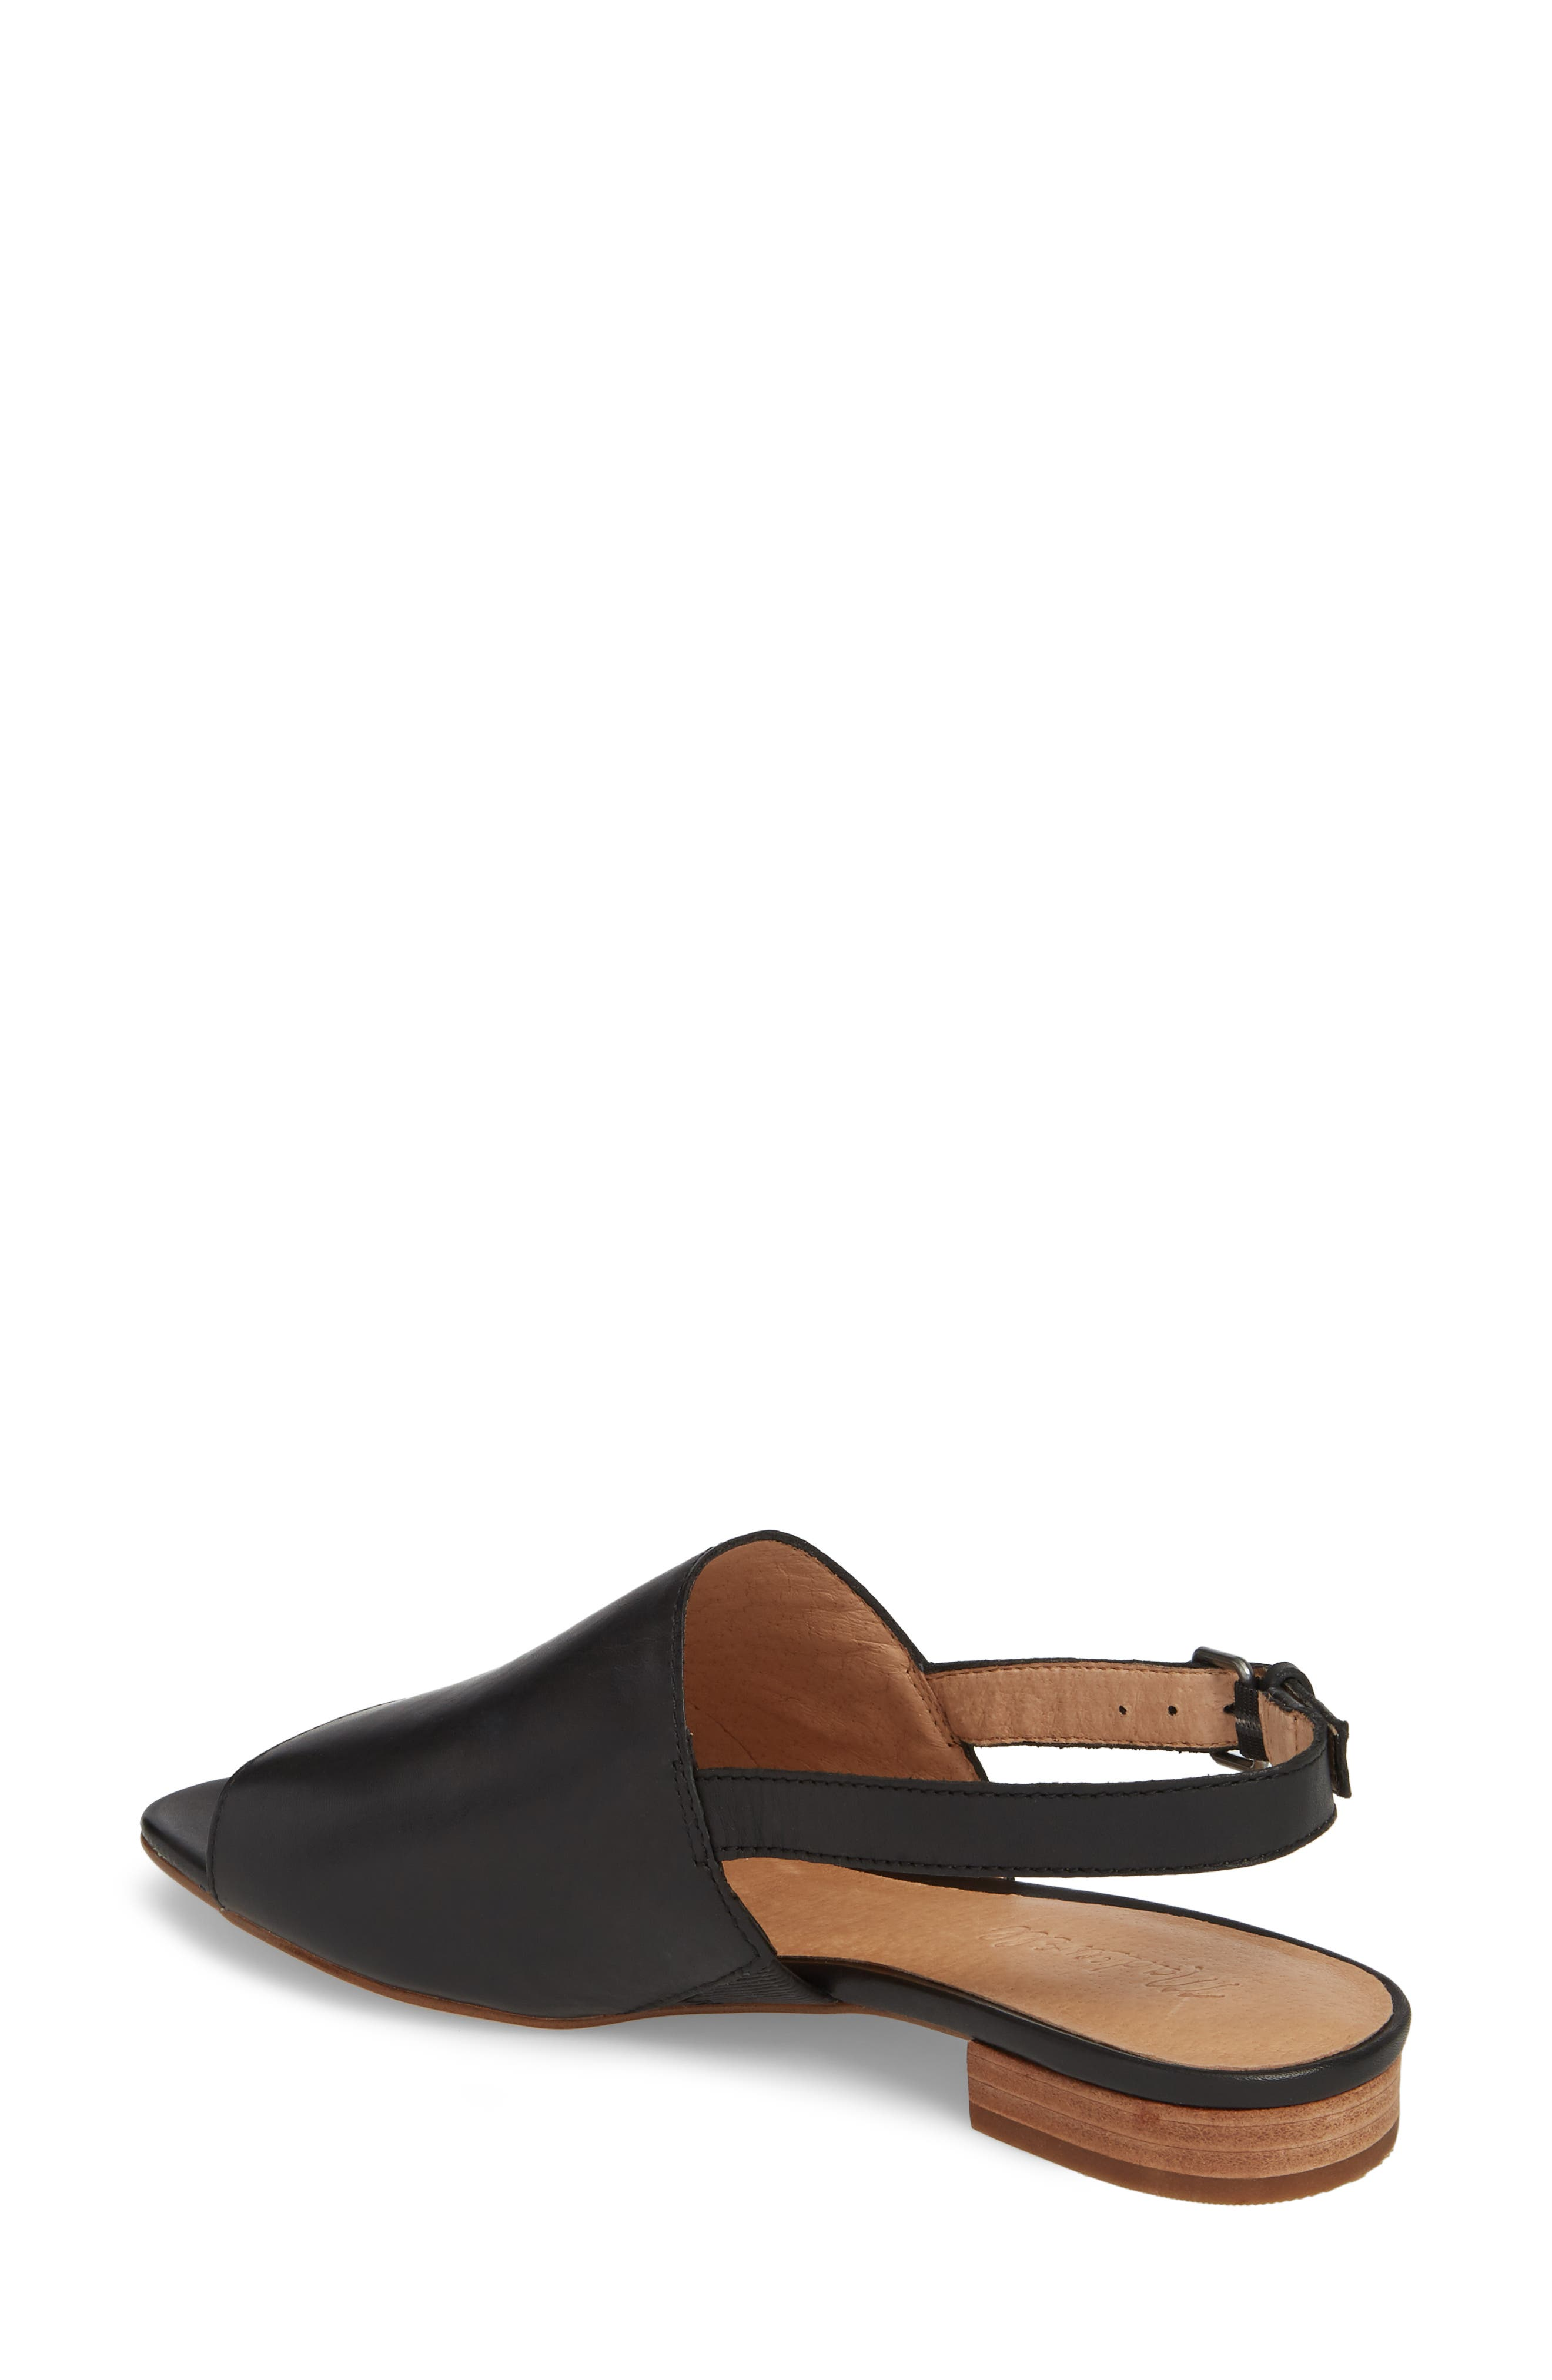 Noelle Slingback Sandal,                             Alternate thumbnail 2, color,                             001